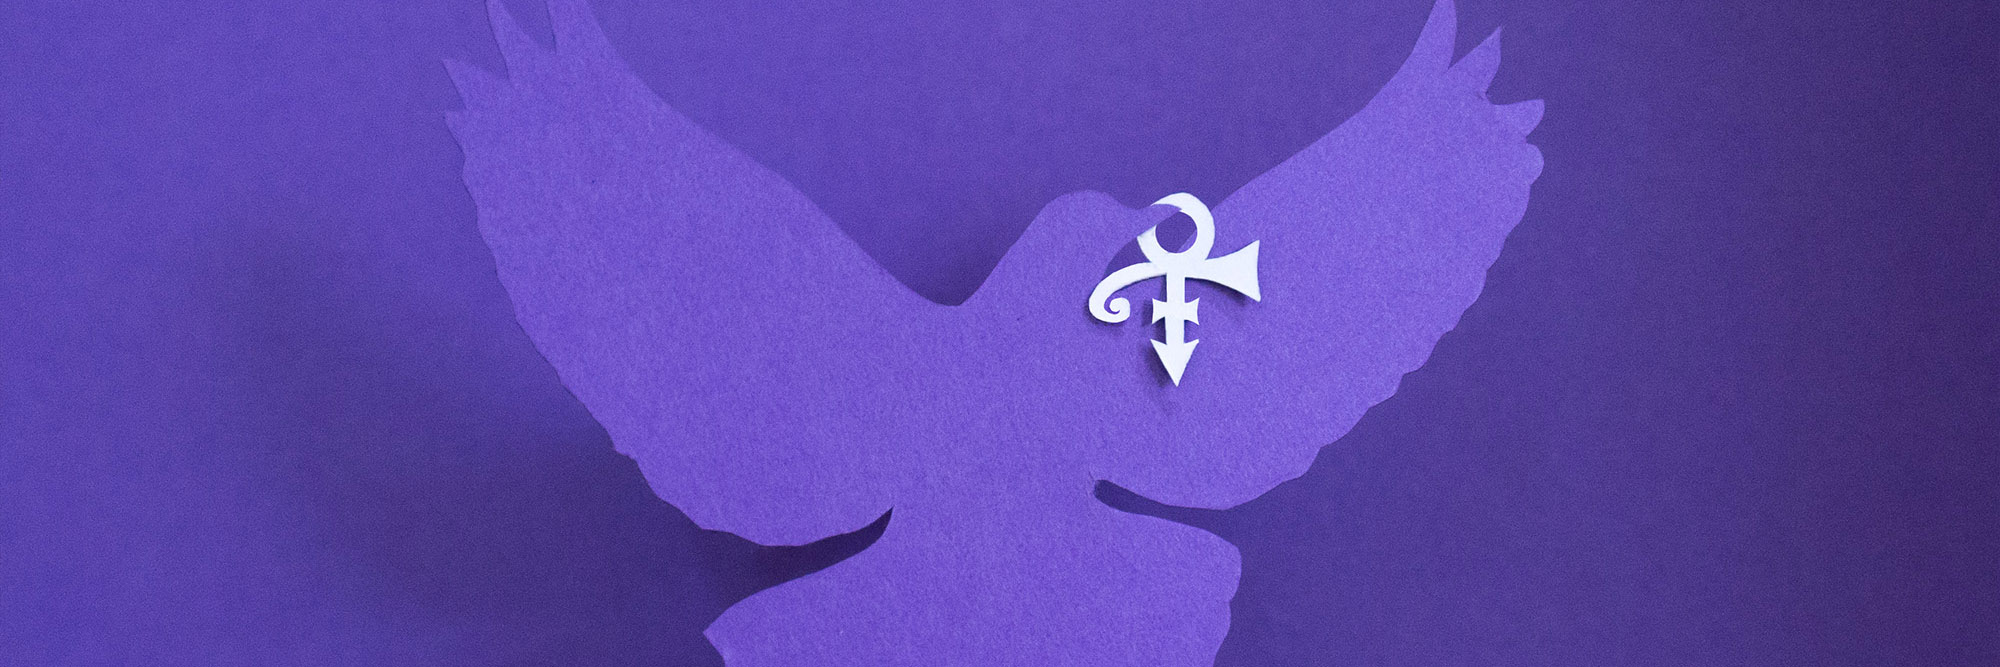 a purple dove cut out of paper with the Prince symbol